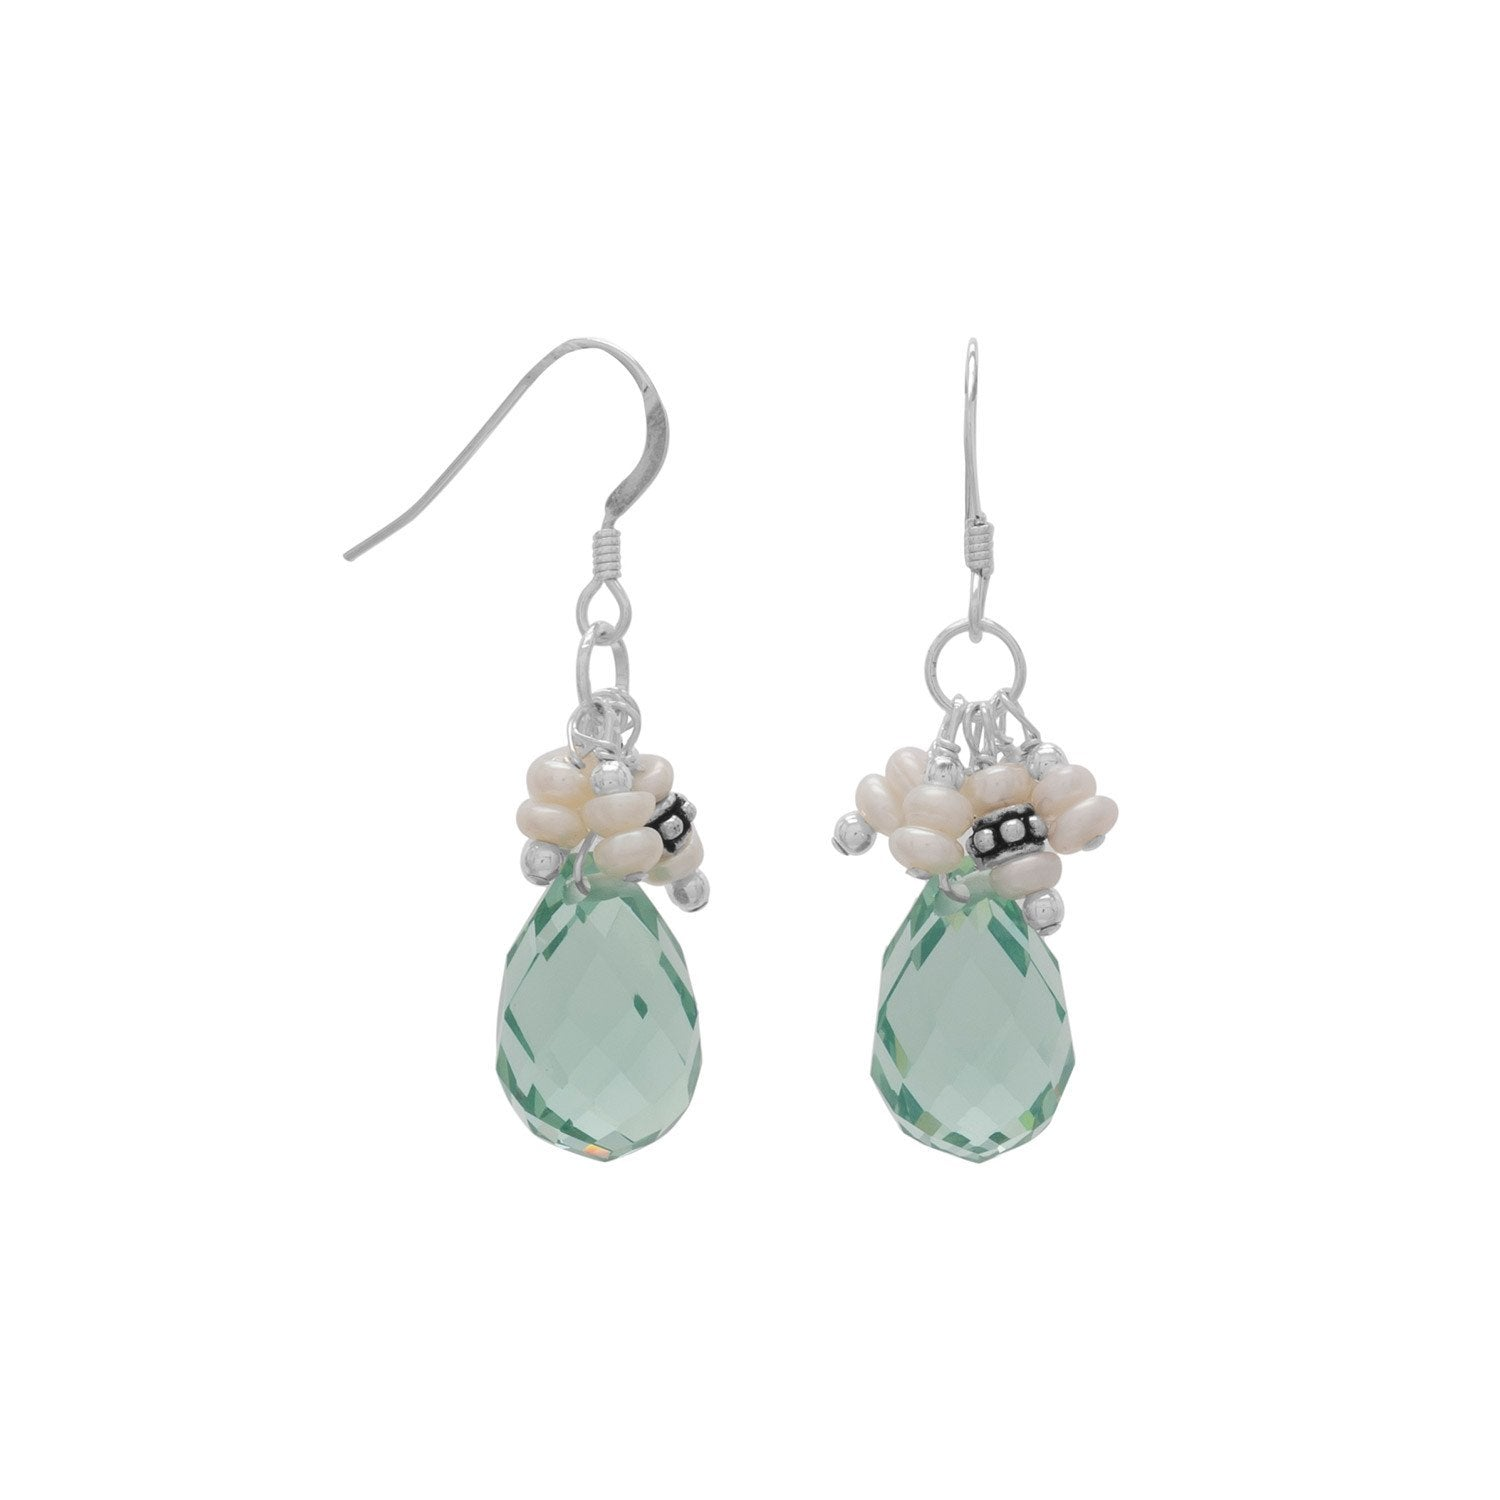 925 Sterling Silver Handmade Earrings with Light Blue Crystal and Pearls